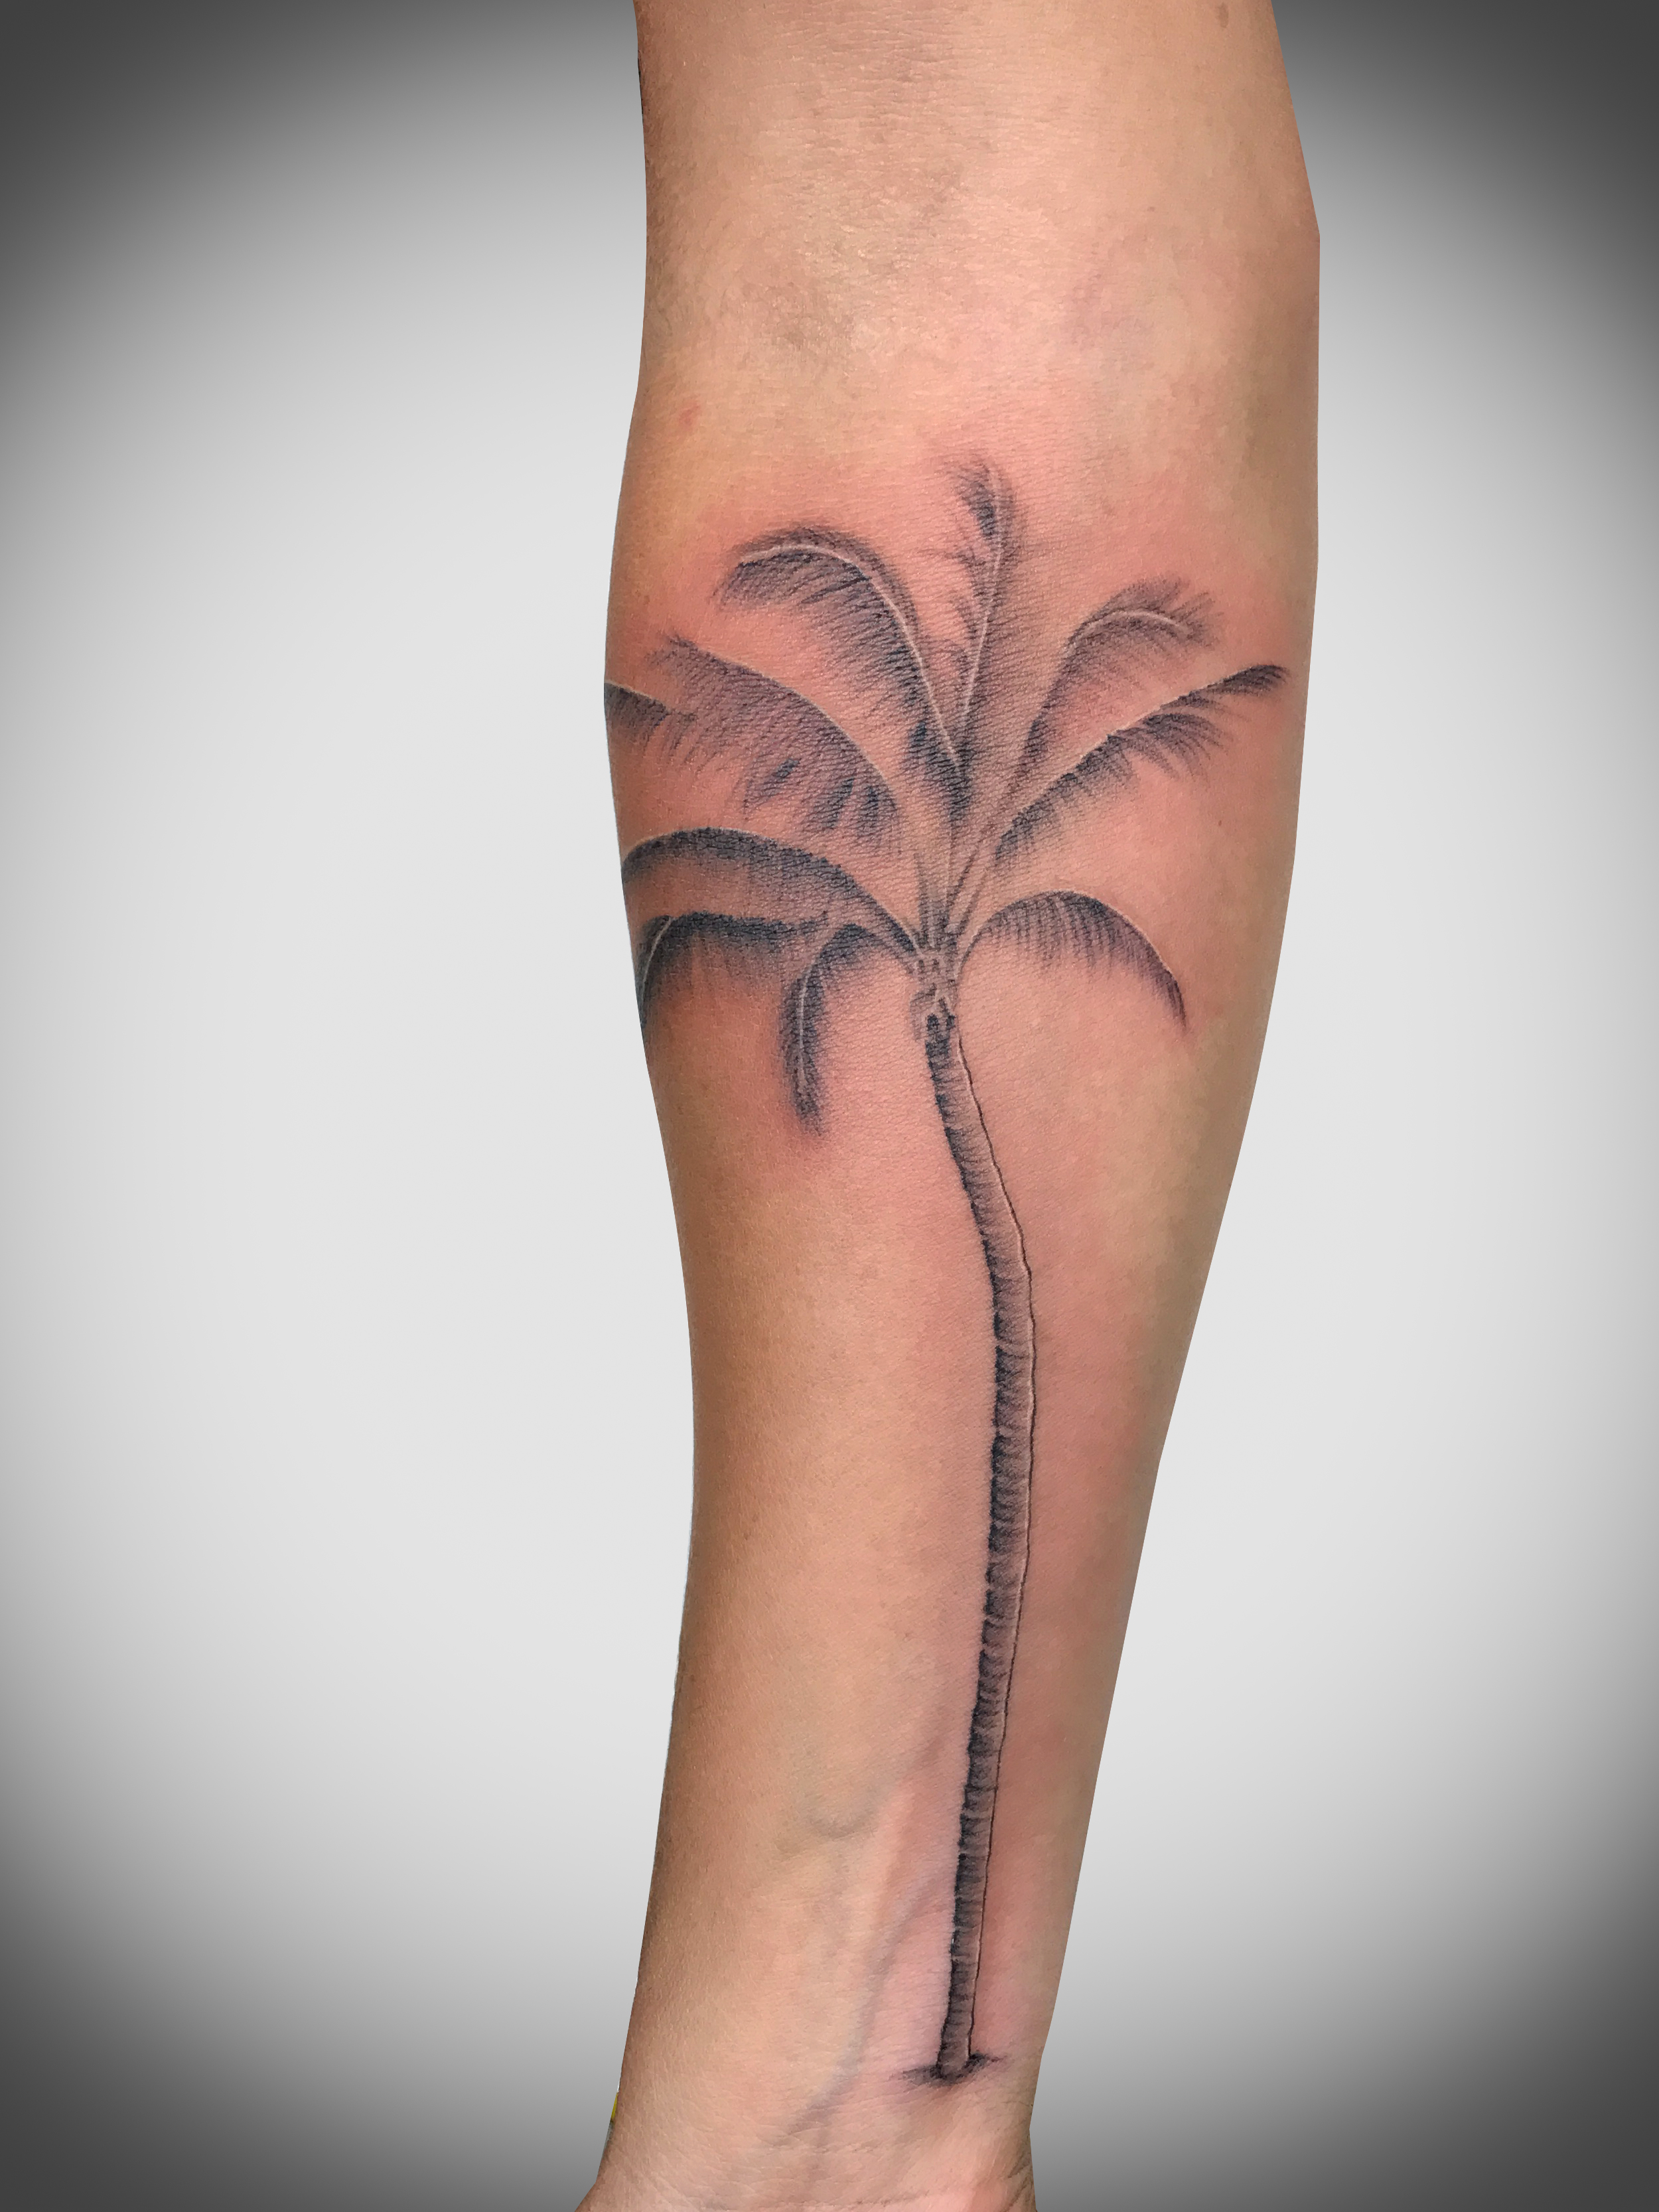 Q Tattoo in Huntington Beach - Sara Delara - palm tree